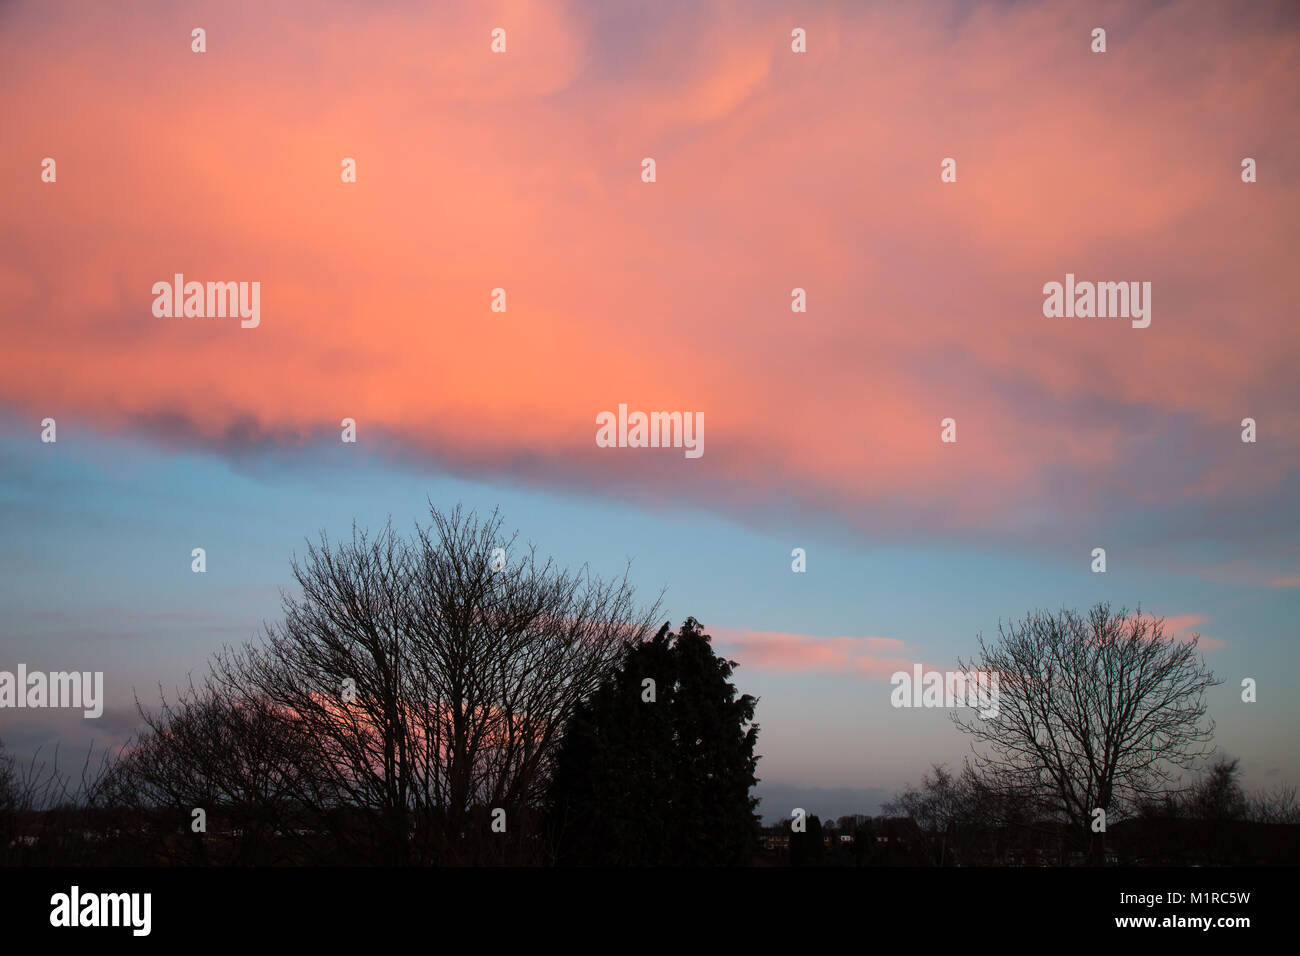 Kidderminster, UK. 1st February, 2018. UK weather: with the January blues now out of the way, amazingly pink early - Stock Image